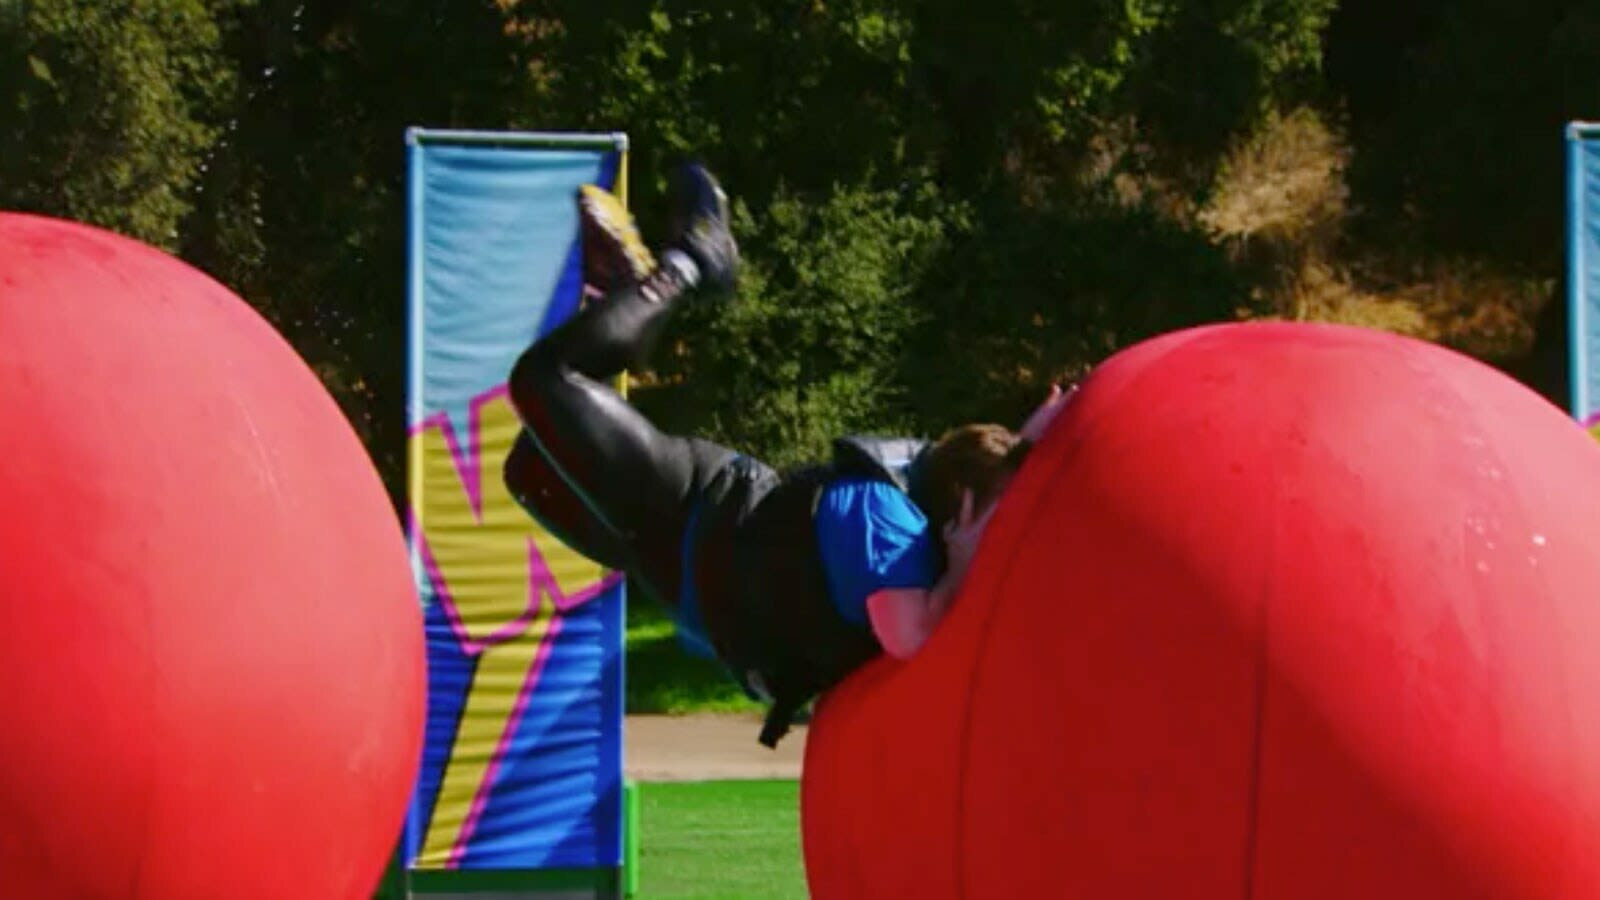 Wipeout — s01e10 — Now You Cena, Now You Don't